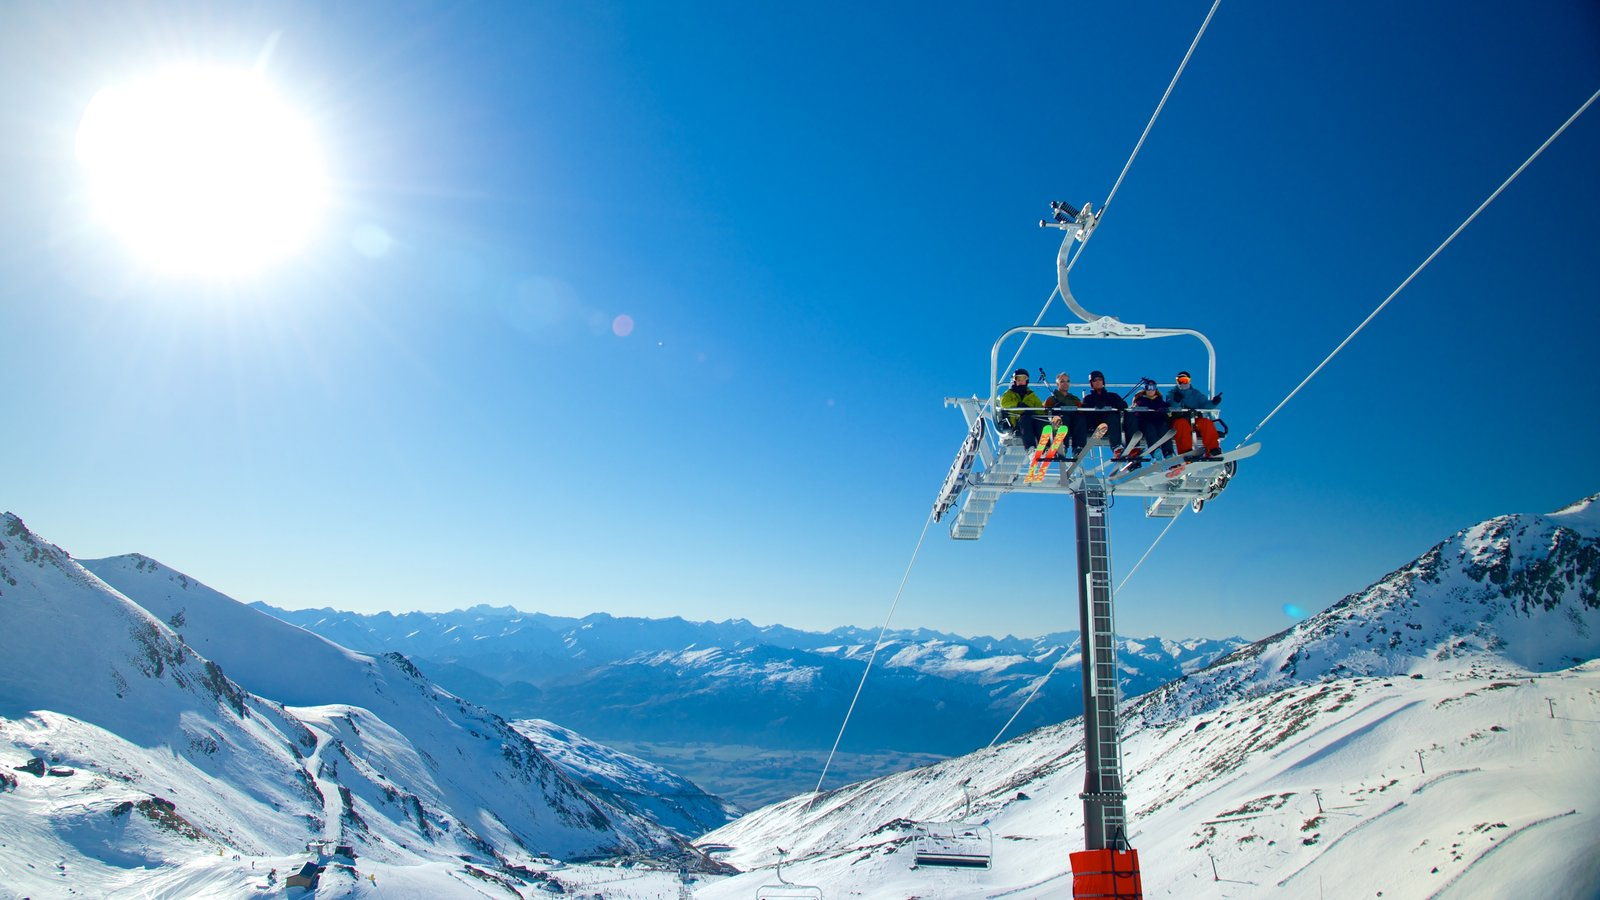 The Remarkables Ski Area showing a gondola and snow as well as a small group of people